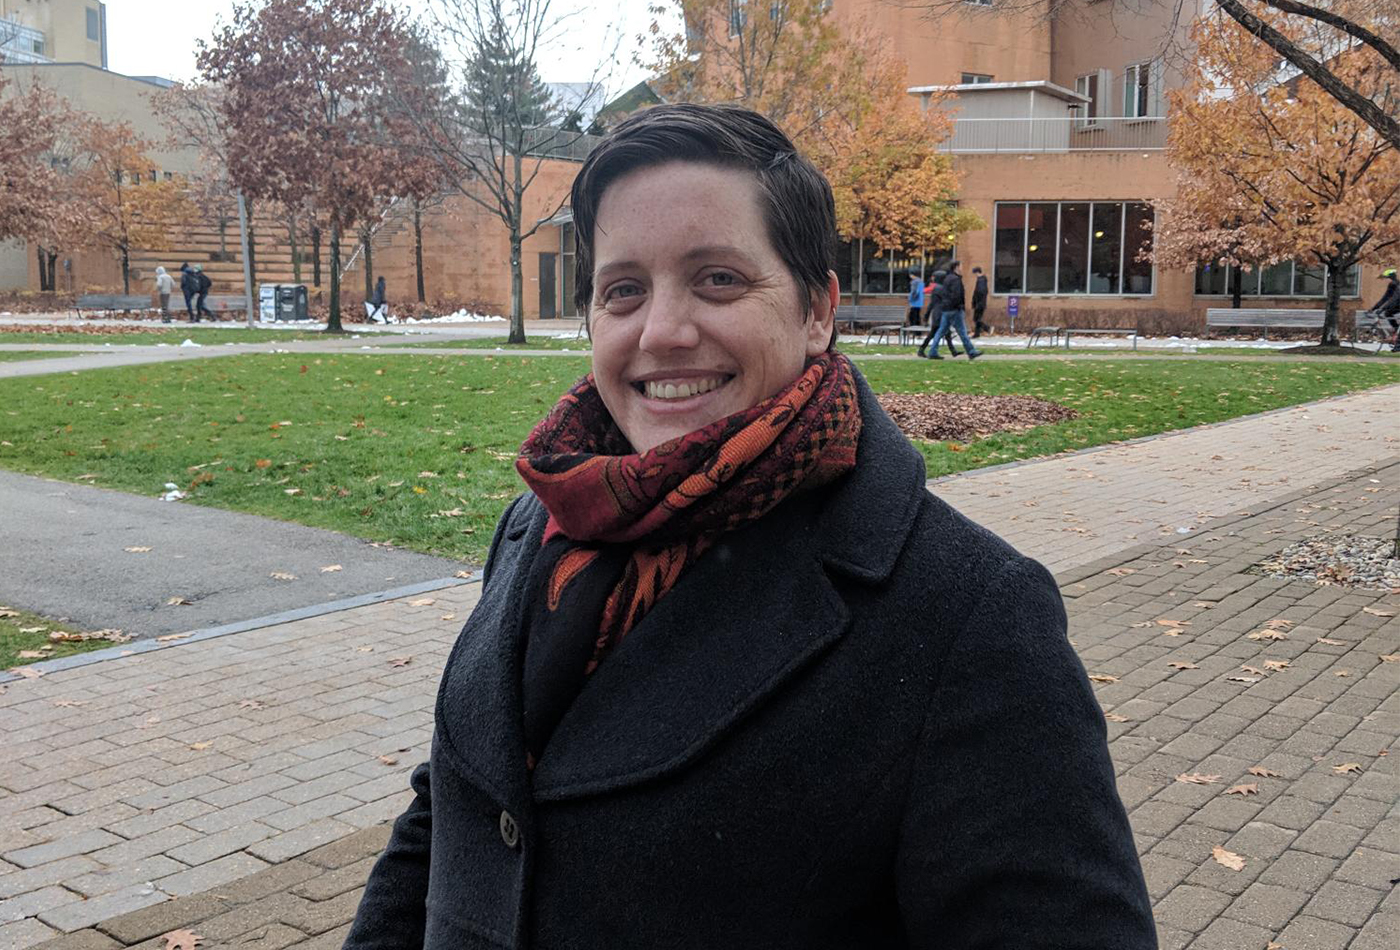 Erin Erhart smiles outdoors in Cambridge on a fall day.